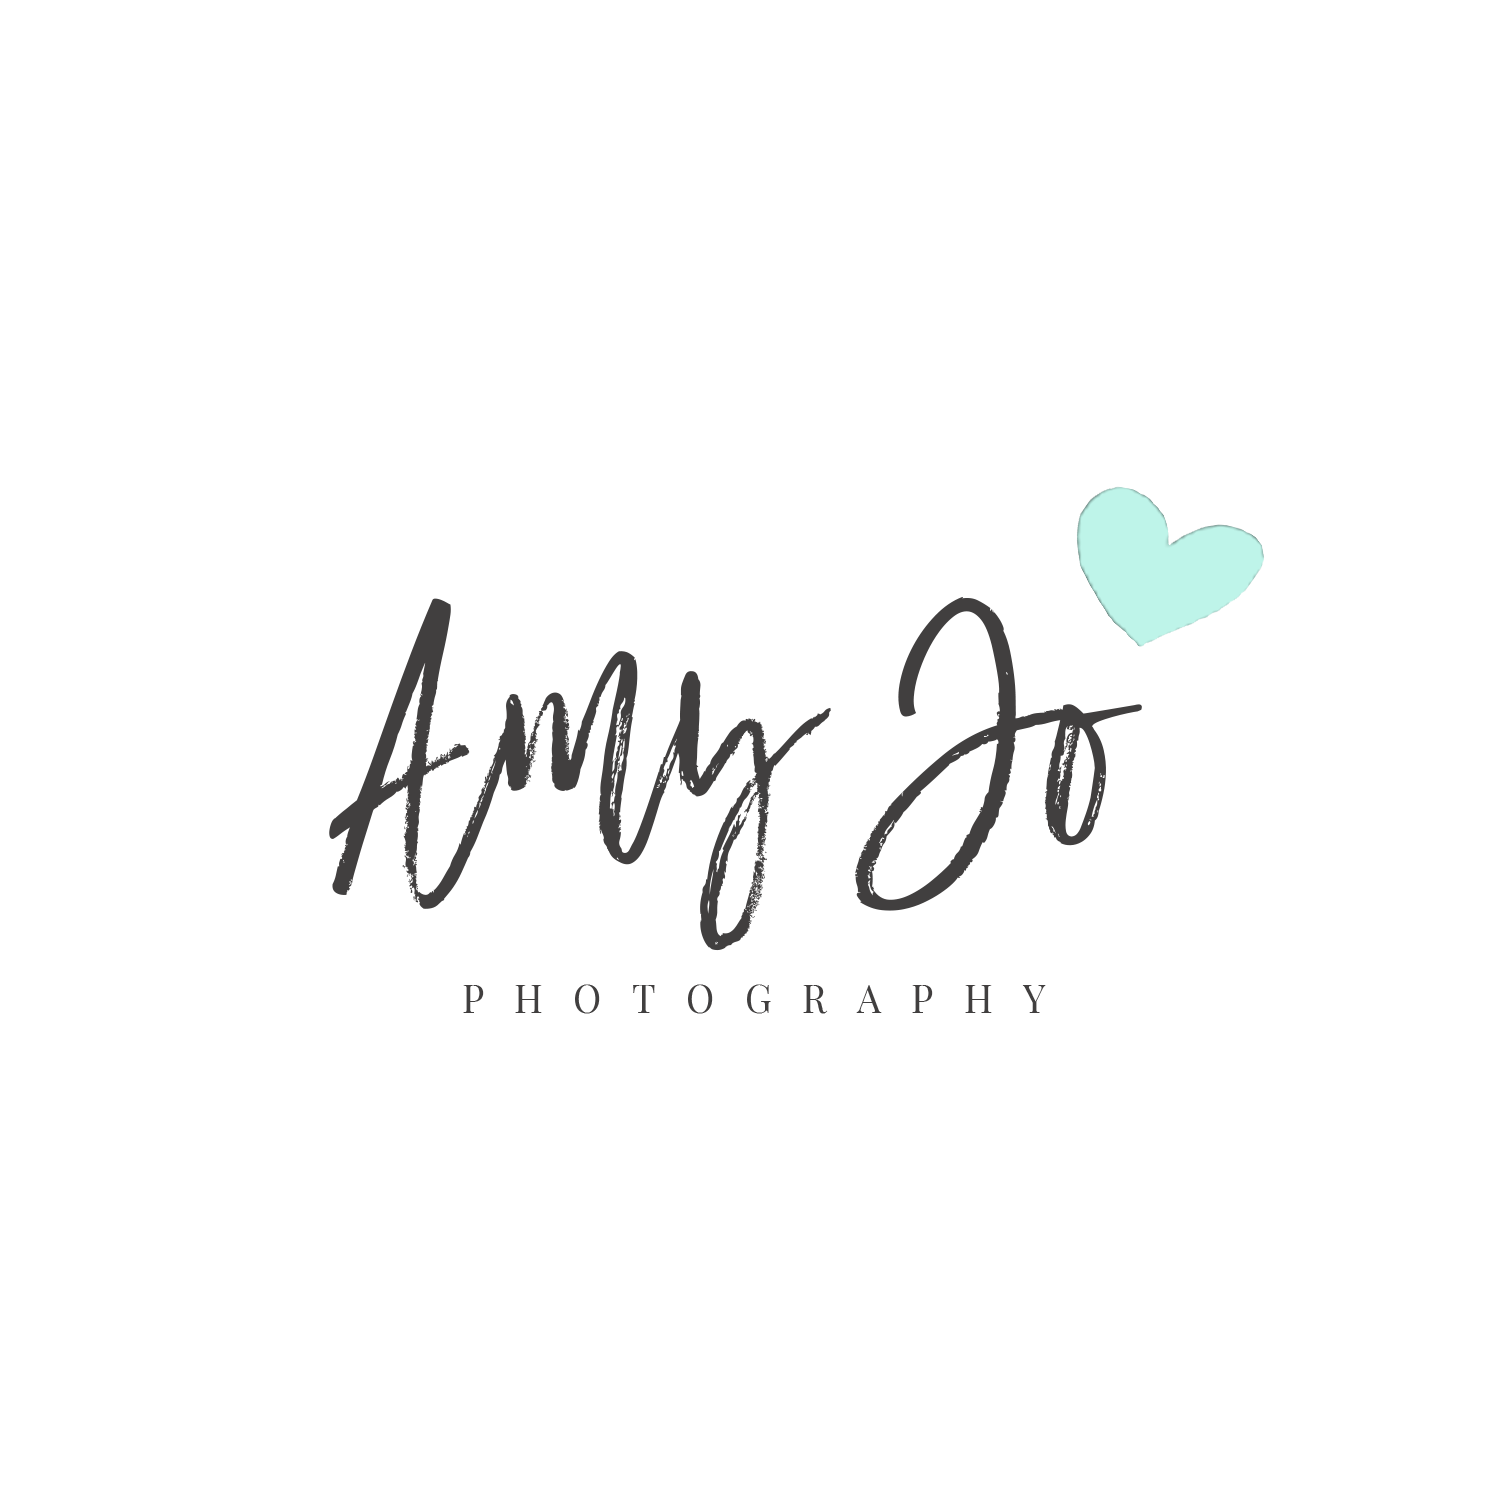 Amy Jo Photography - Cumming, GA 30040 - (678)717-7332 | ShowMeLocal.com